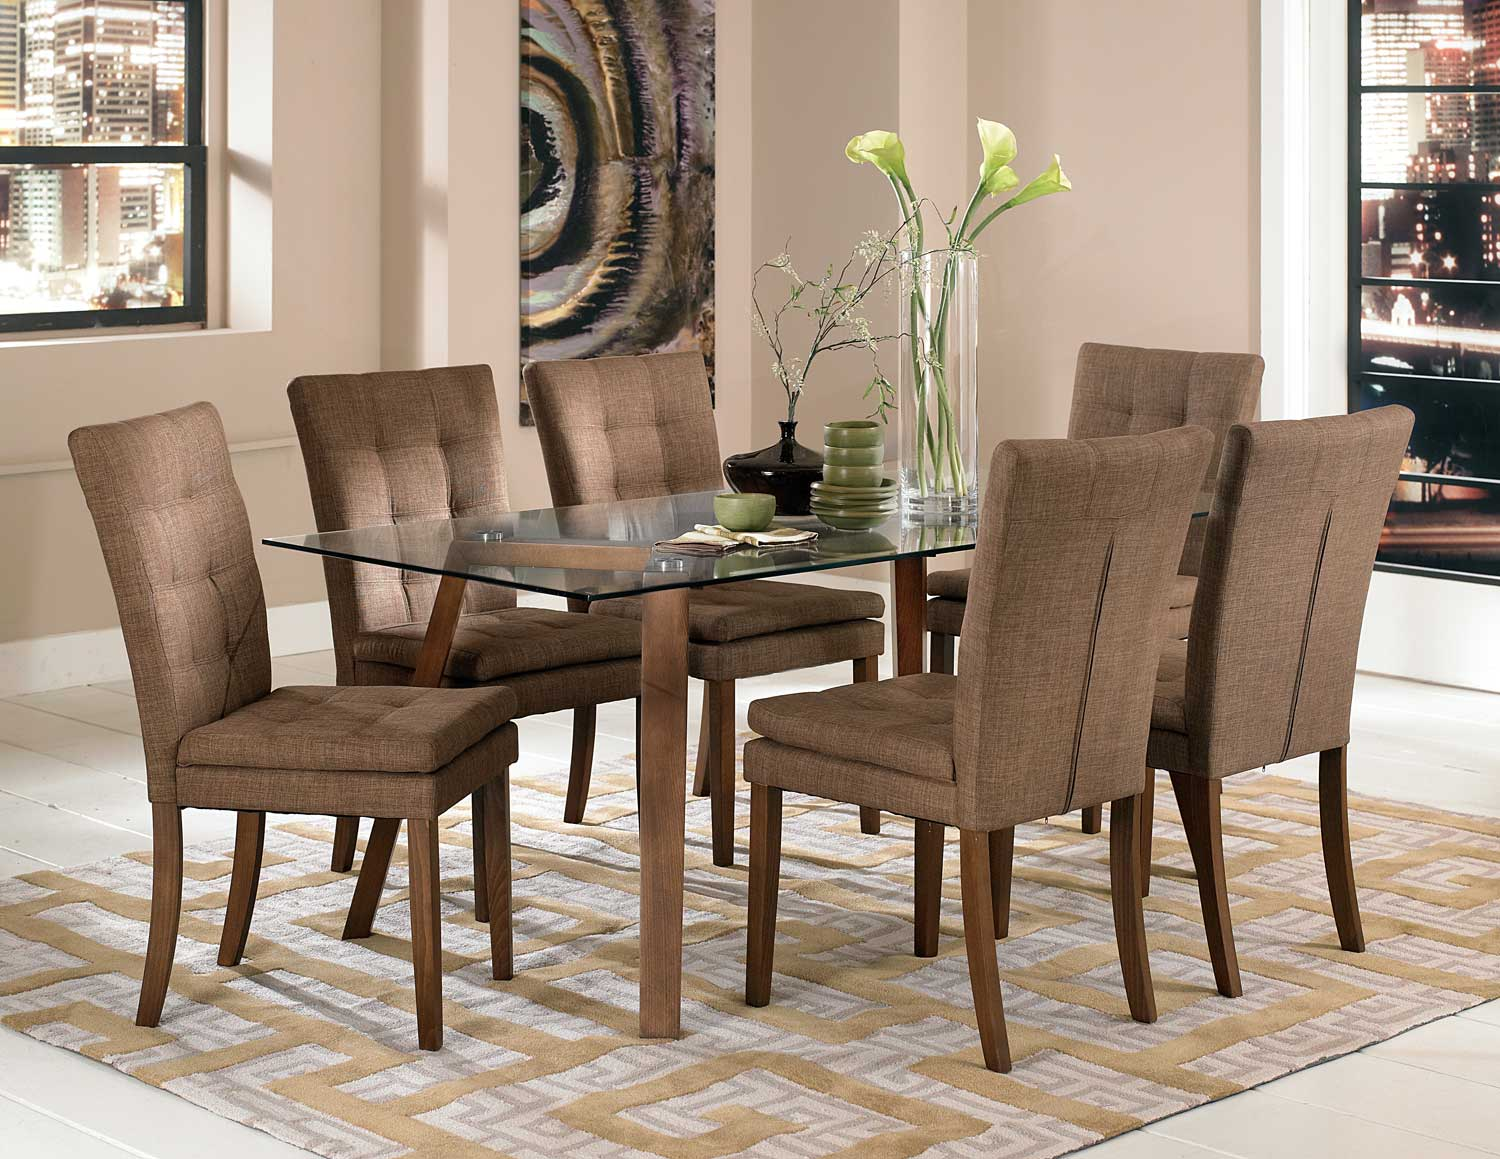 Homelegance Maitland Dining Set